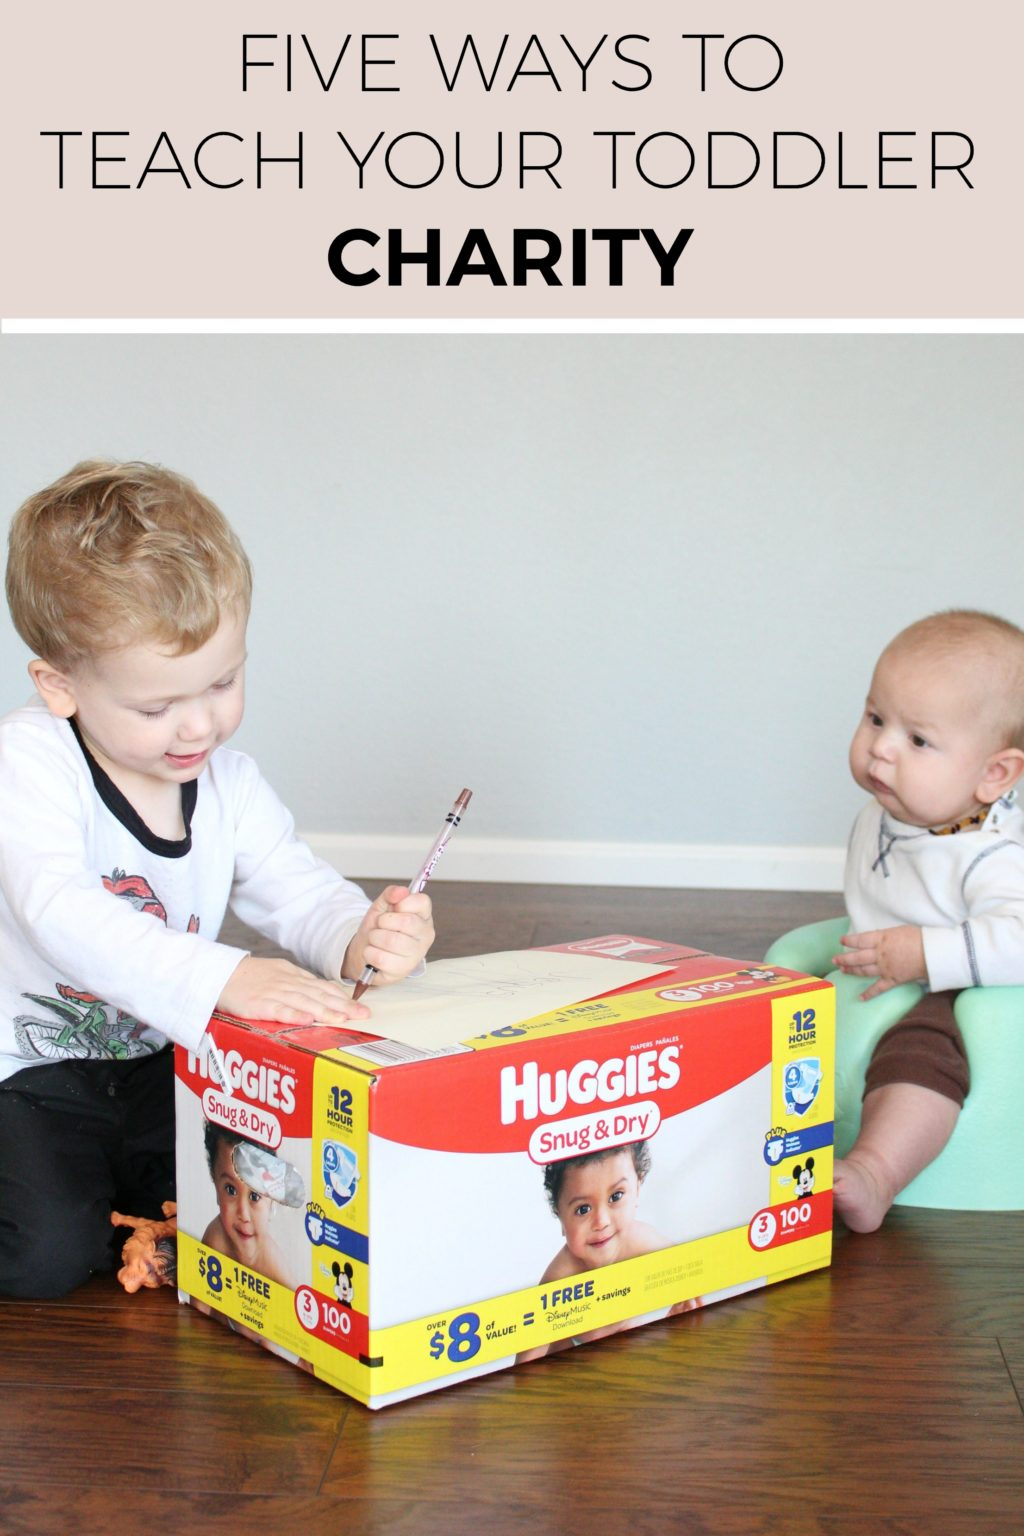 #ad Teaching your toddler about charity is HARD but totally worth it! Thankfully, @Huggies and @KrogerCo have teamed up in an awesome way to help us mamas teach our kids! Click through to learn more! #DiaperNeed